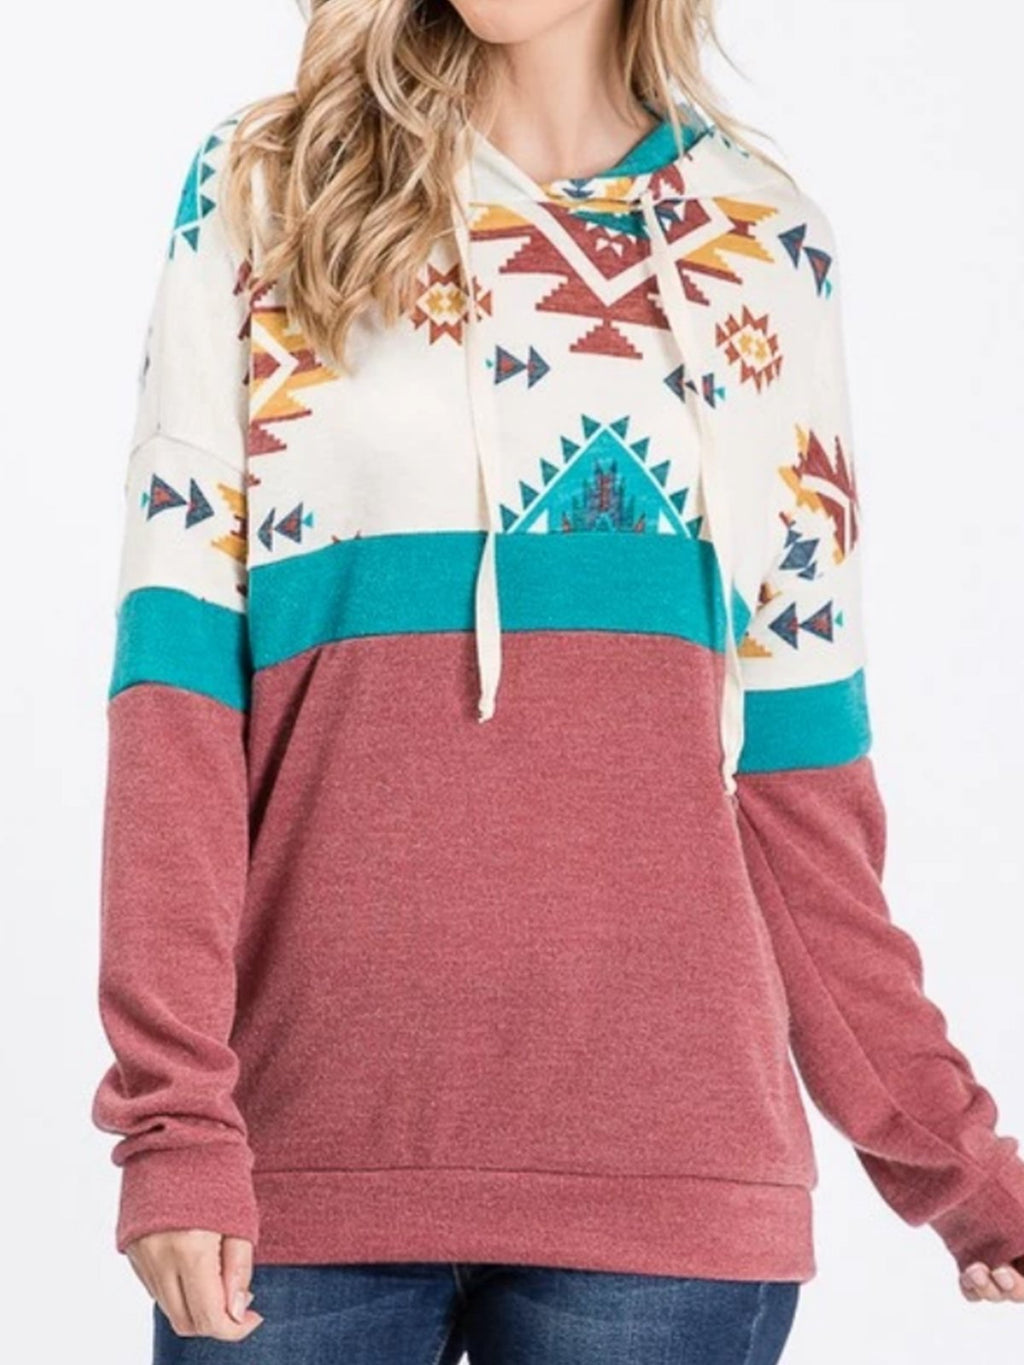 Plus Size Casual Long Sleeve Tribal Sweatshirt Hoodies